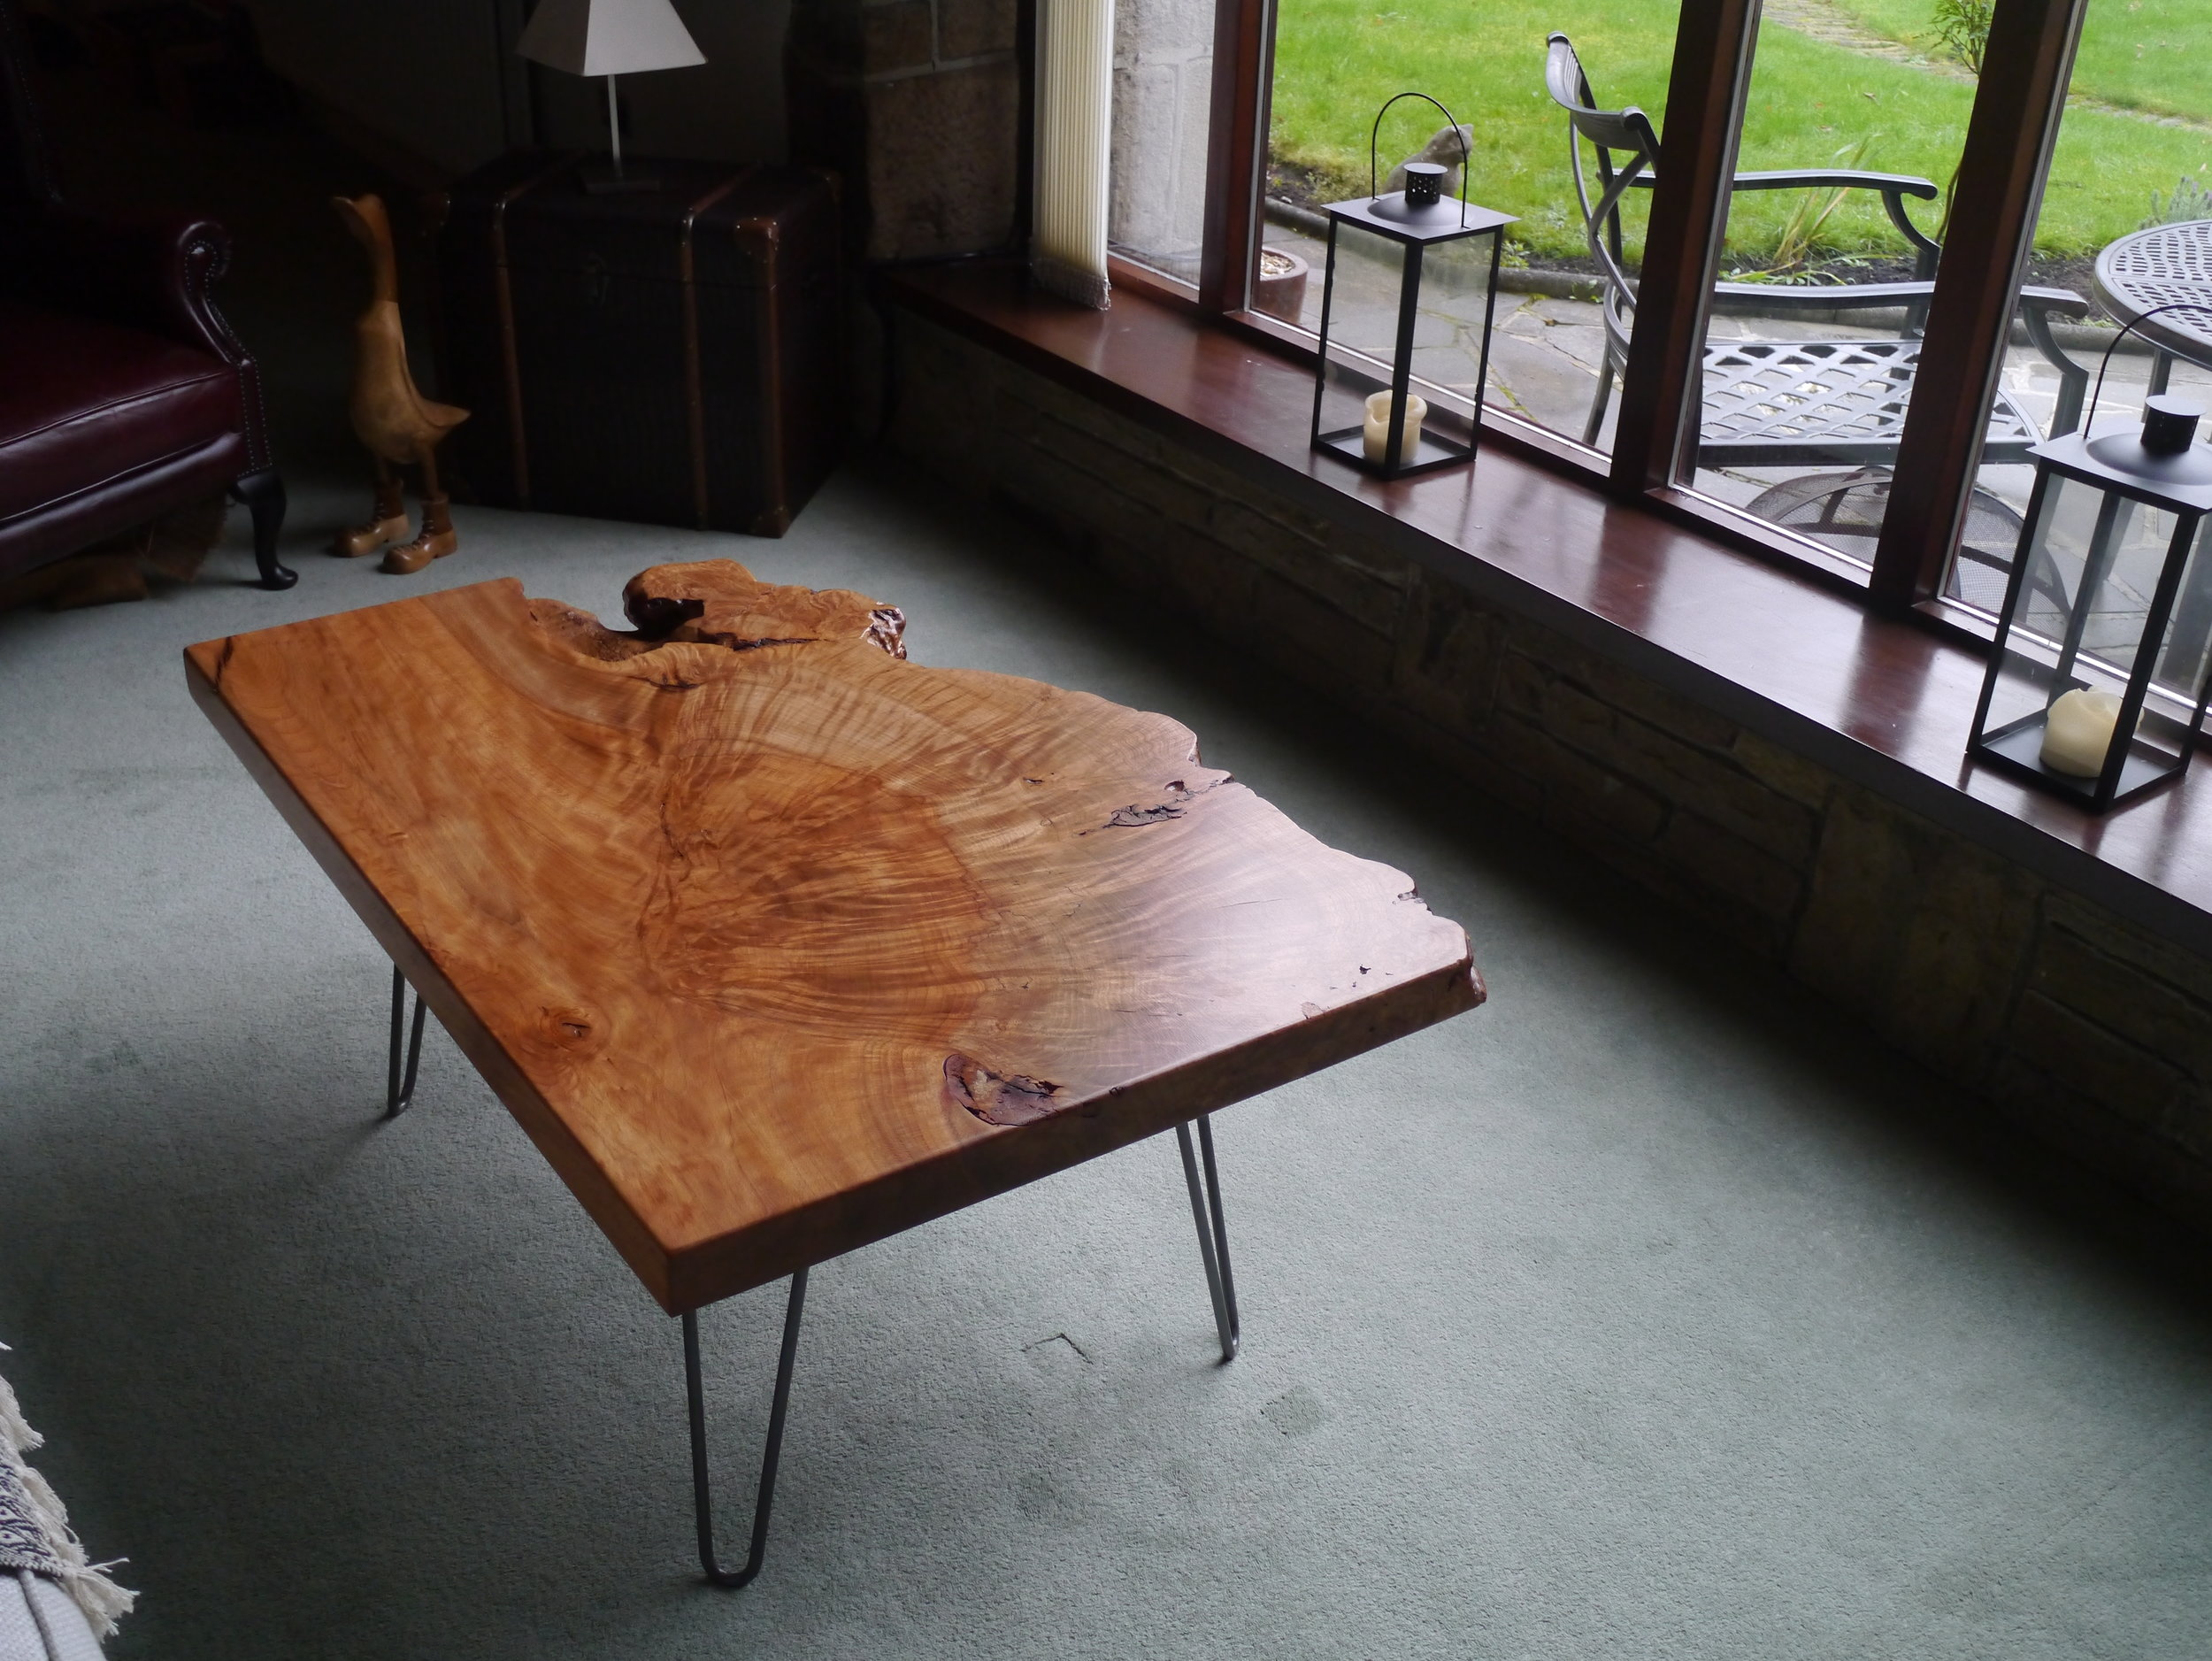 The Beech Slab table in its new home.